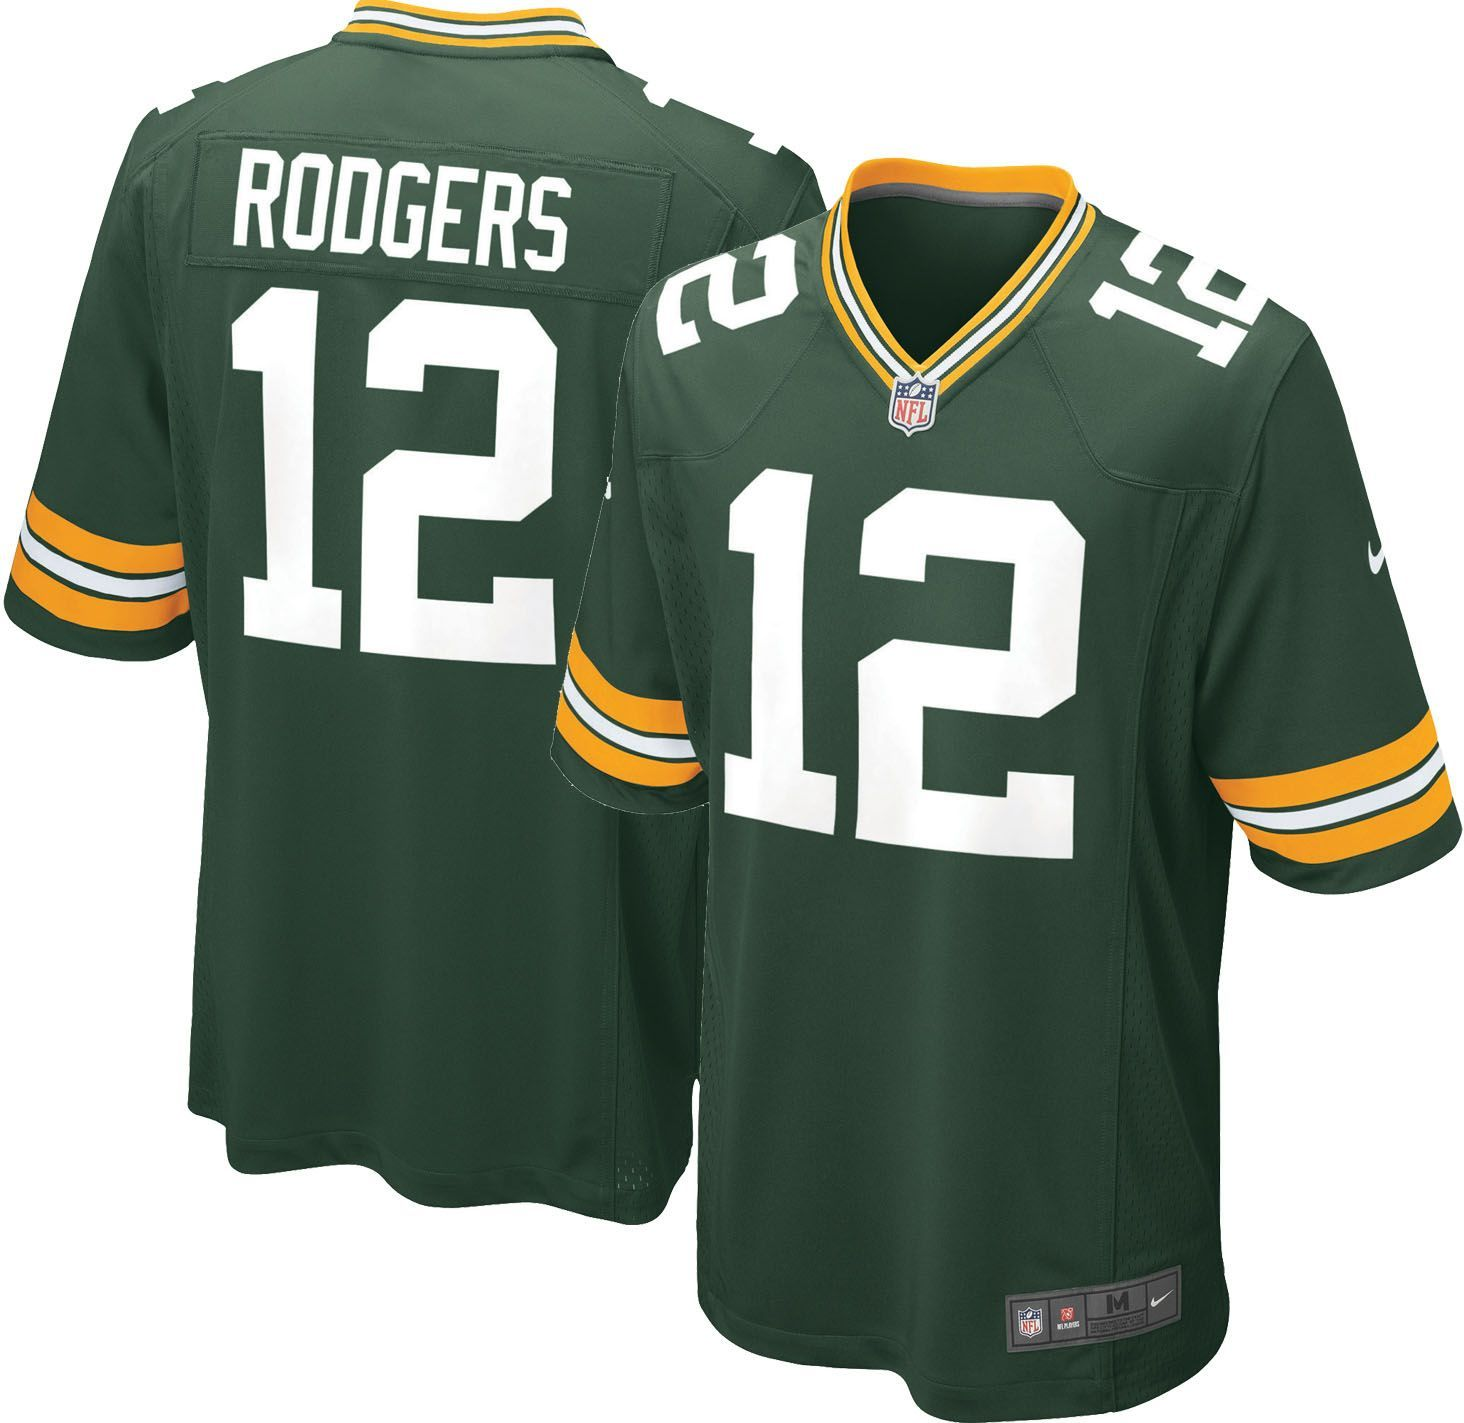 Nike Men S Home Game Jersey Green Bay Packers Aaron Rodgers 12 Jersey Nike Green Bay Packers Y Jerseys Nfl